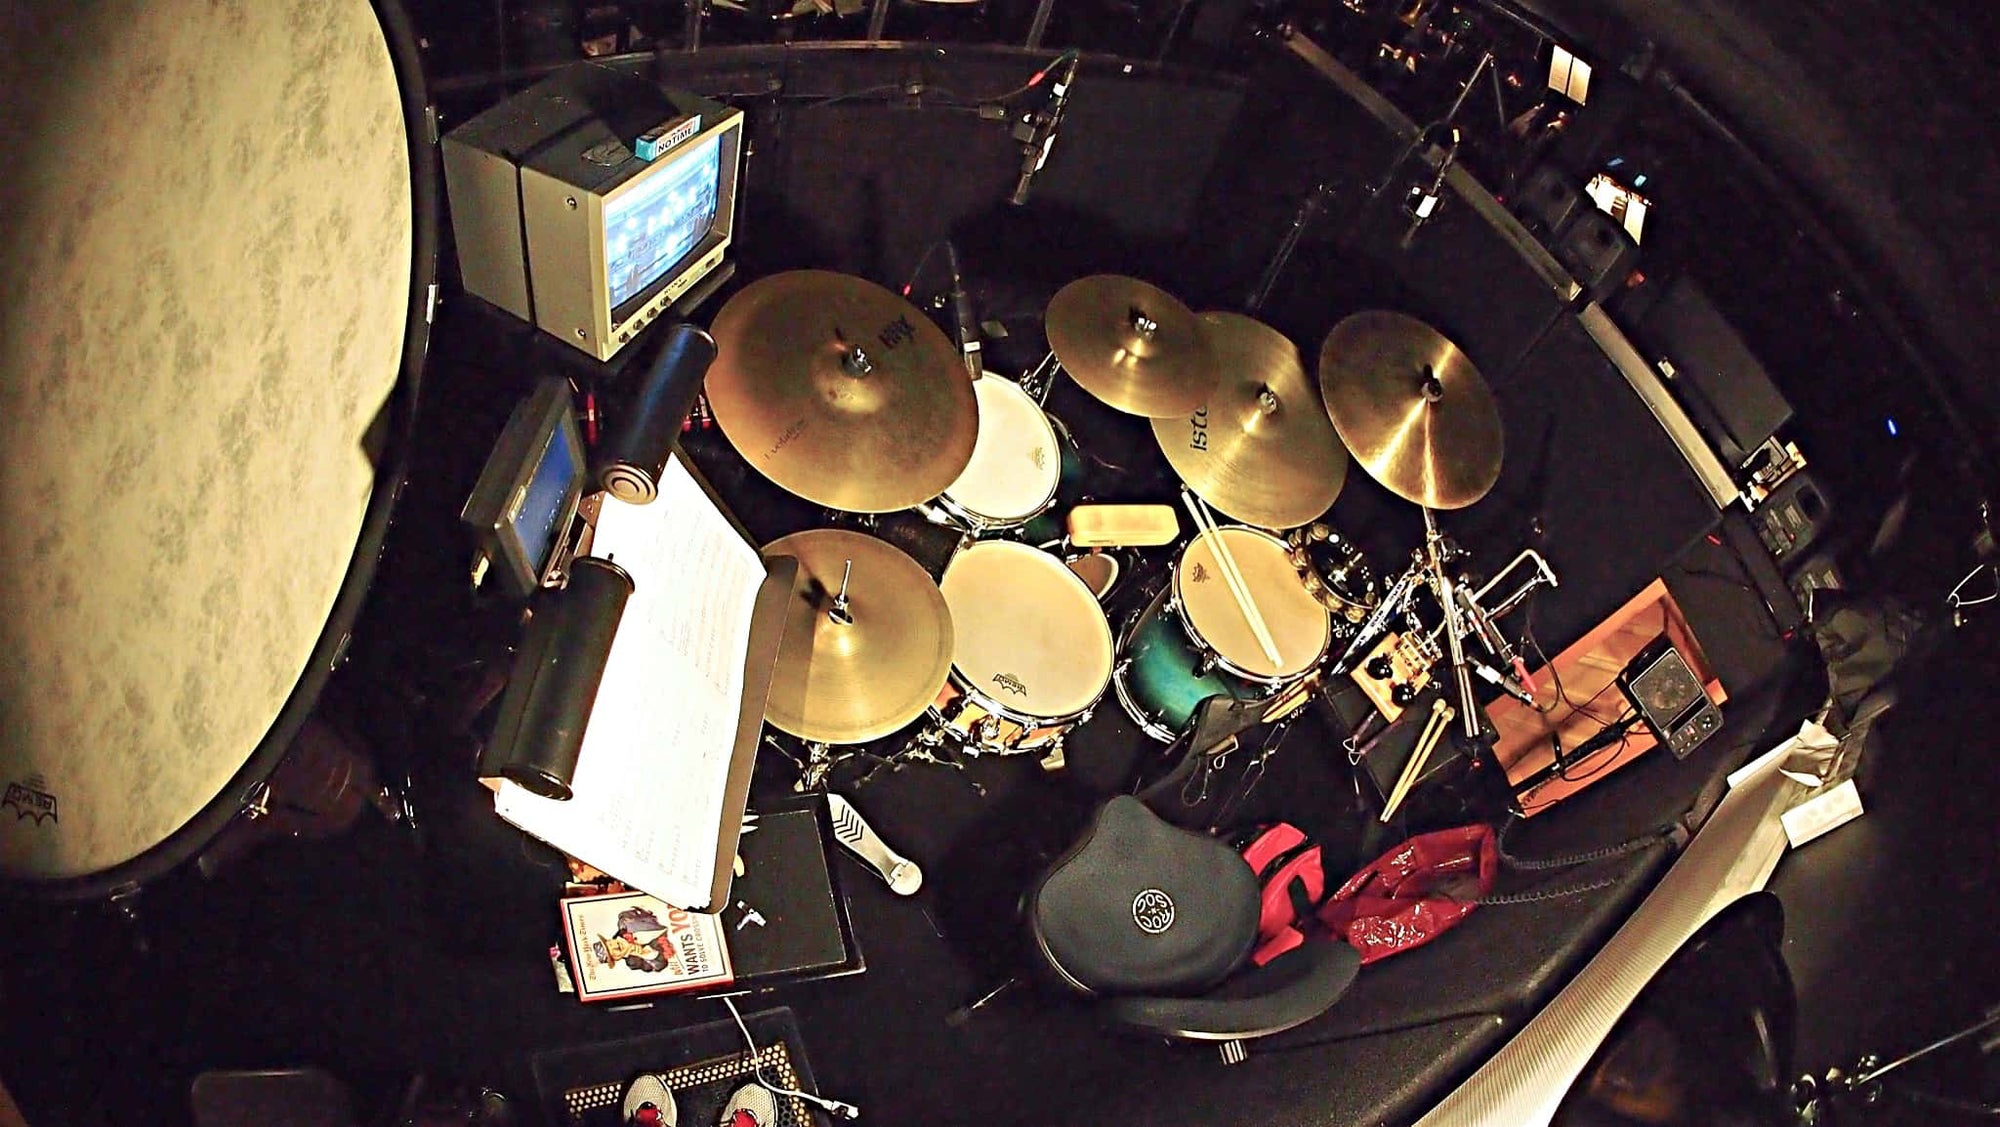 Rich Rosenzweig's drum set setup for the Broadway production of On The Town at the Lyric Theatre.